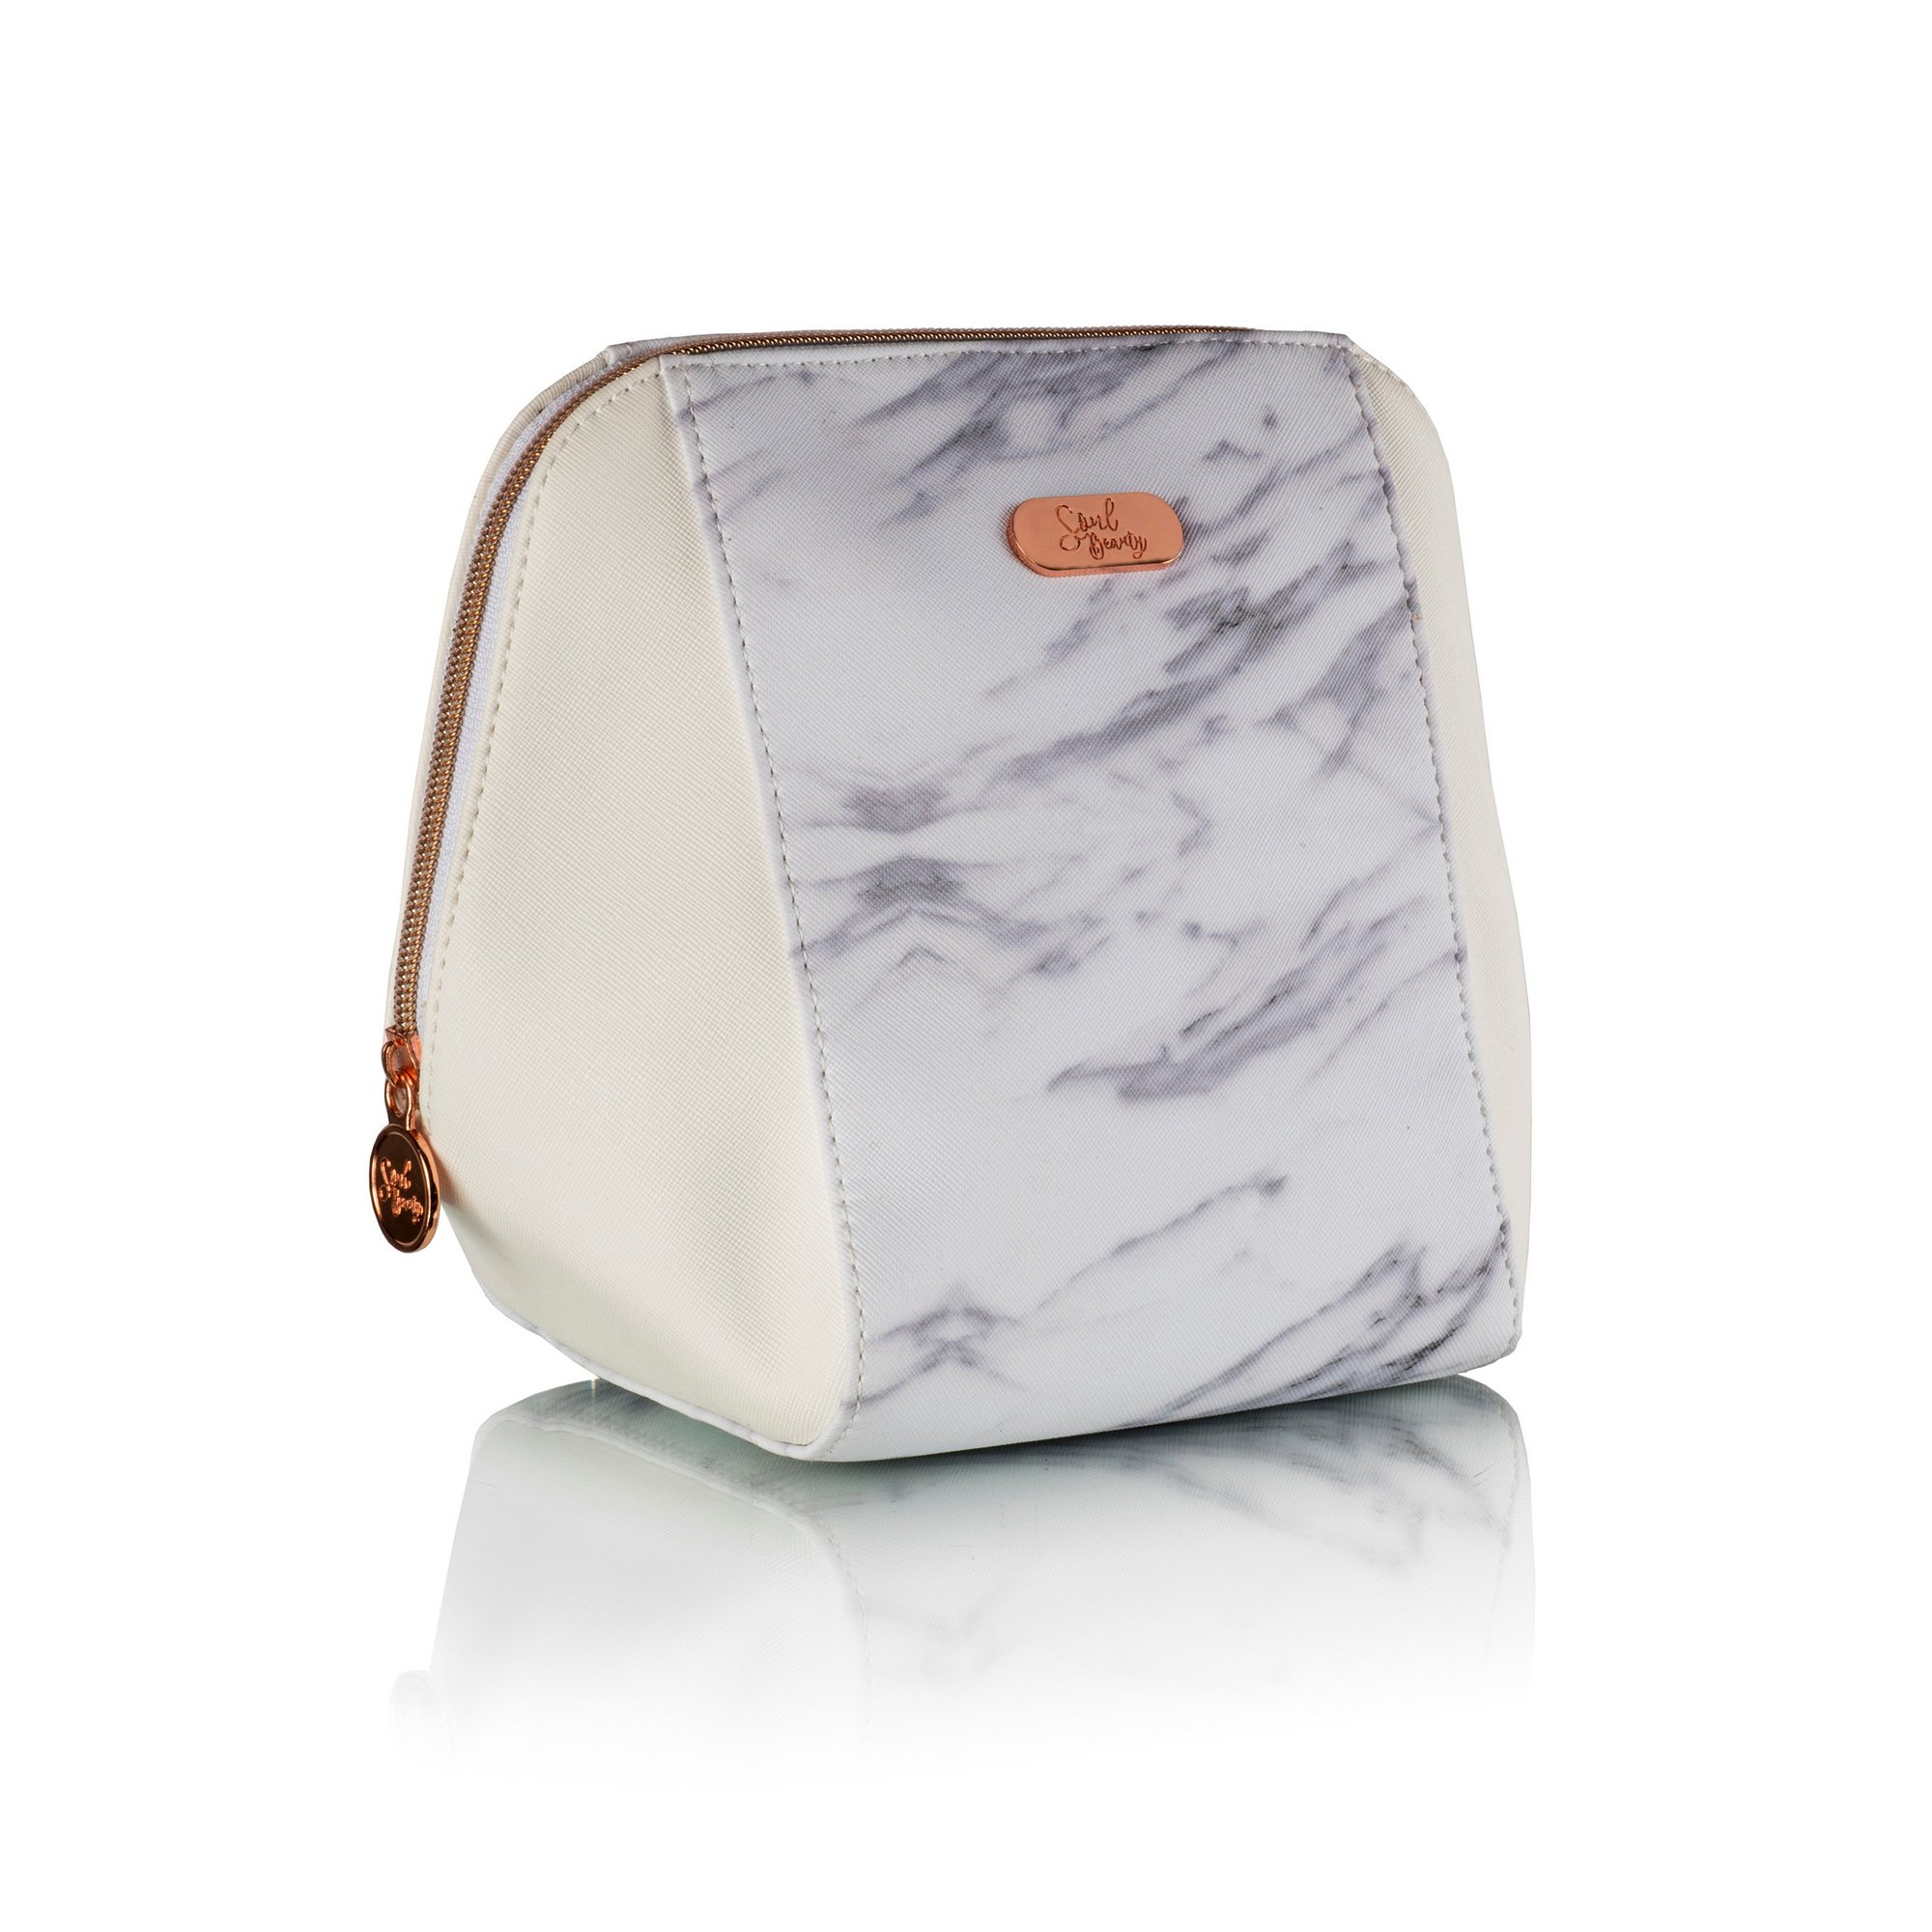 Image of Soul Beauty Marble Collection Cosmetics Bag